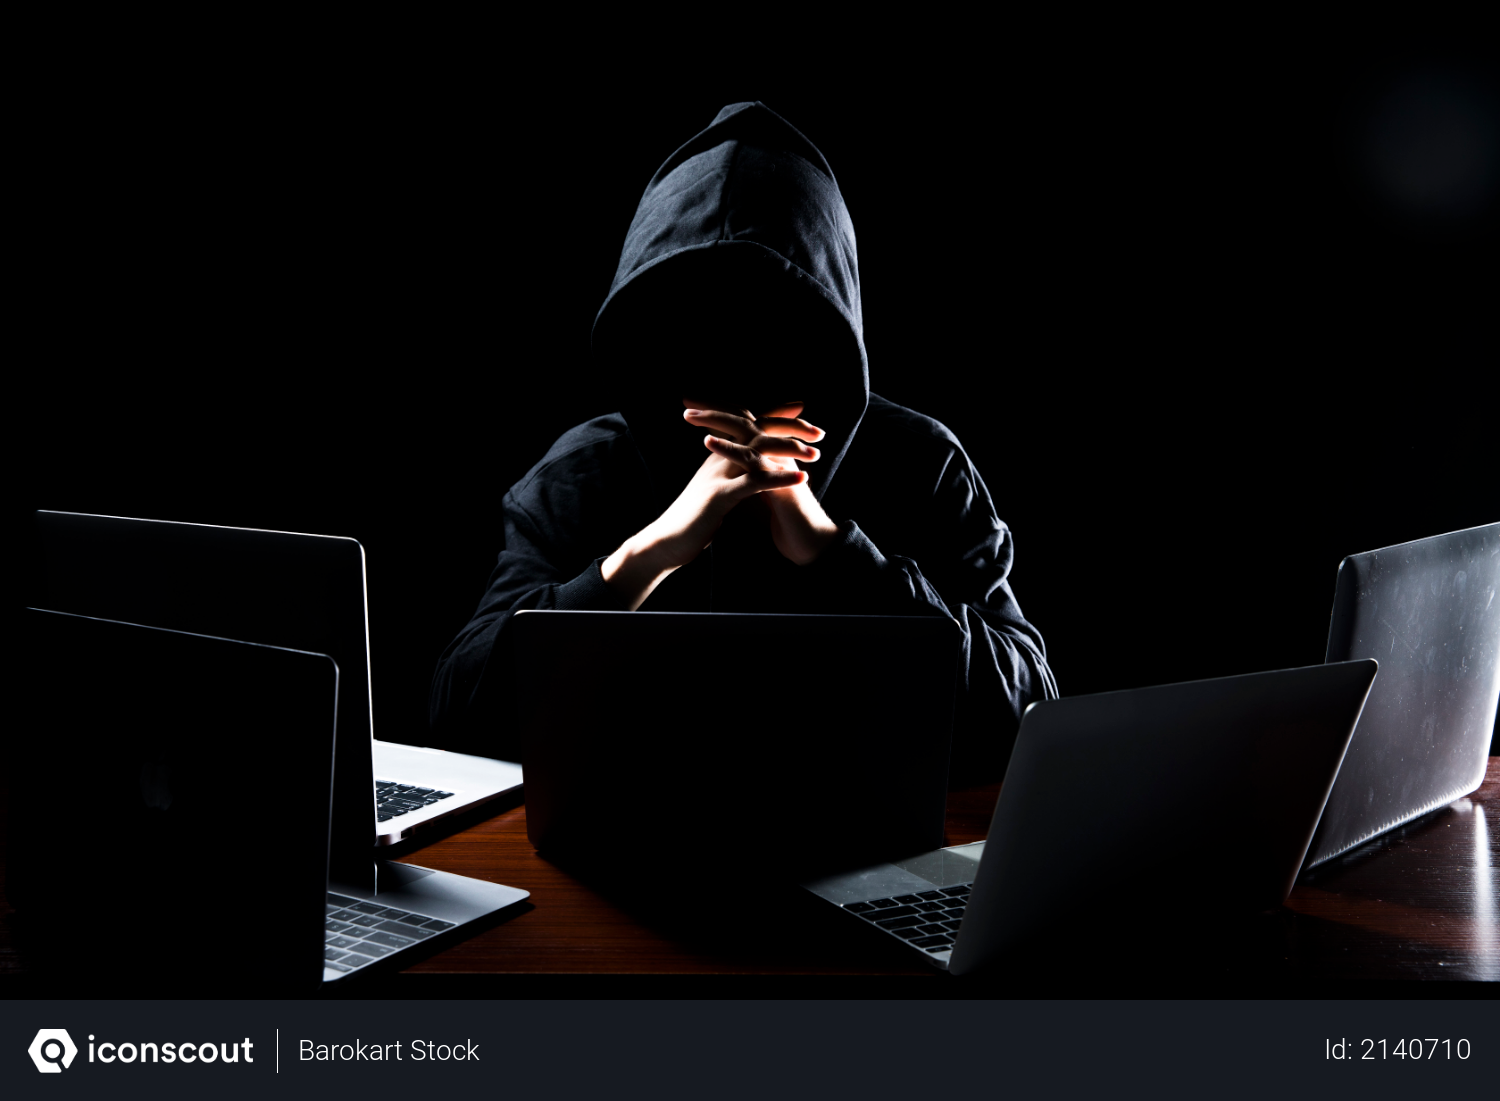 Free Hacker Wearing Hoodie With Laptop And Dark Lighting As Hacking Concept Photo Download In Png Jpg Format